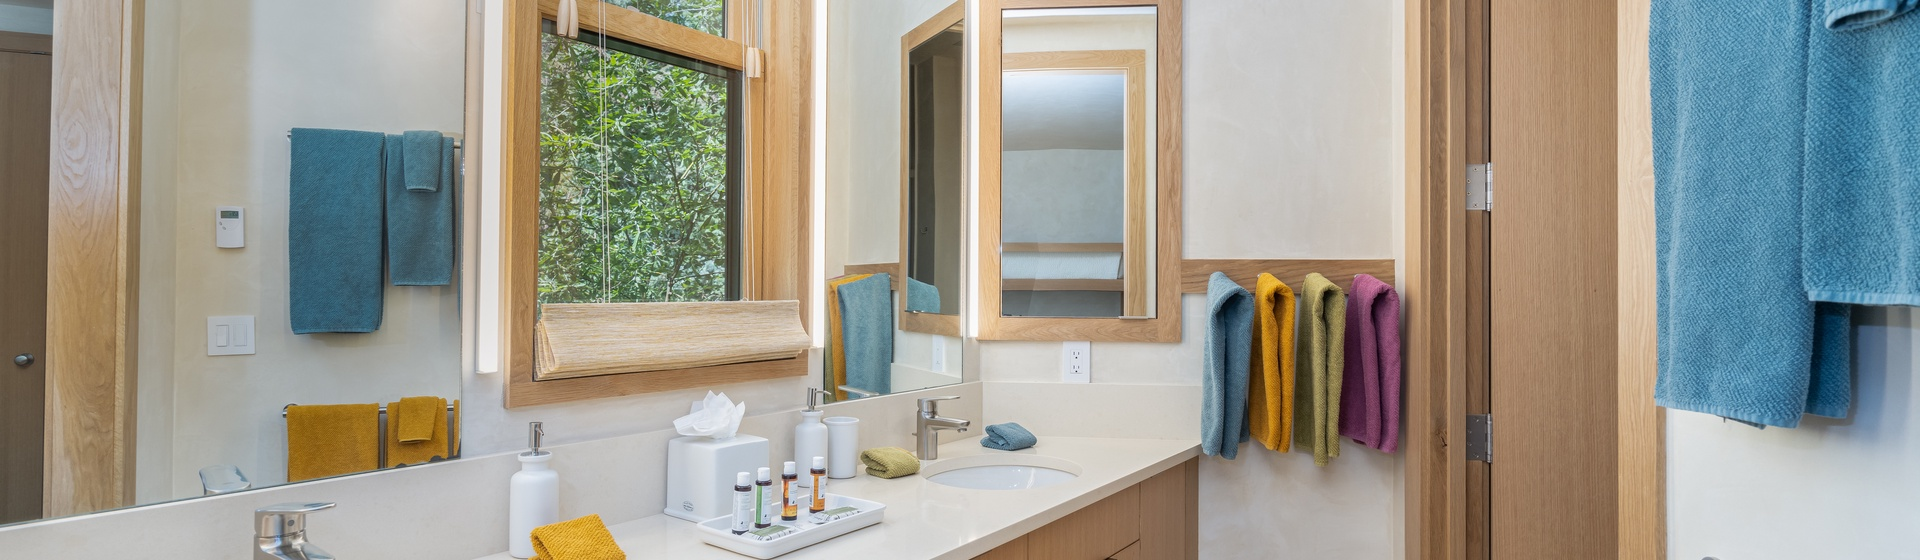 23-Telluride-480-Depot-Bunk-Bathroom